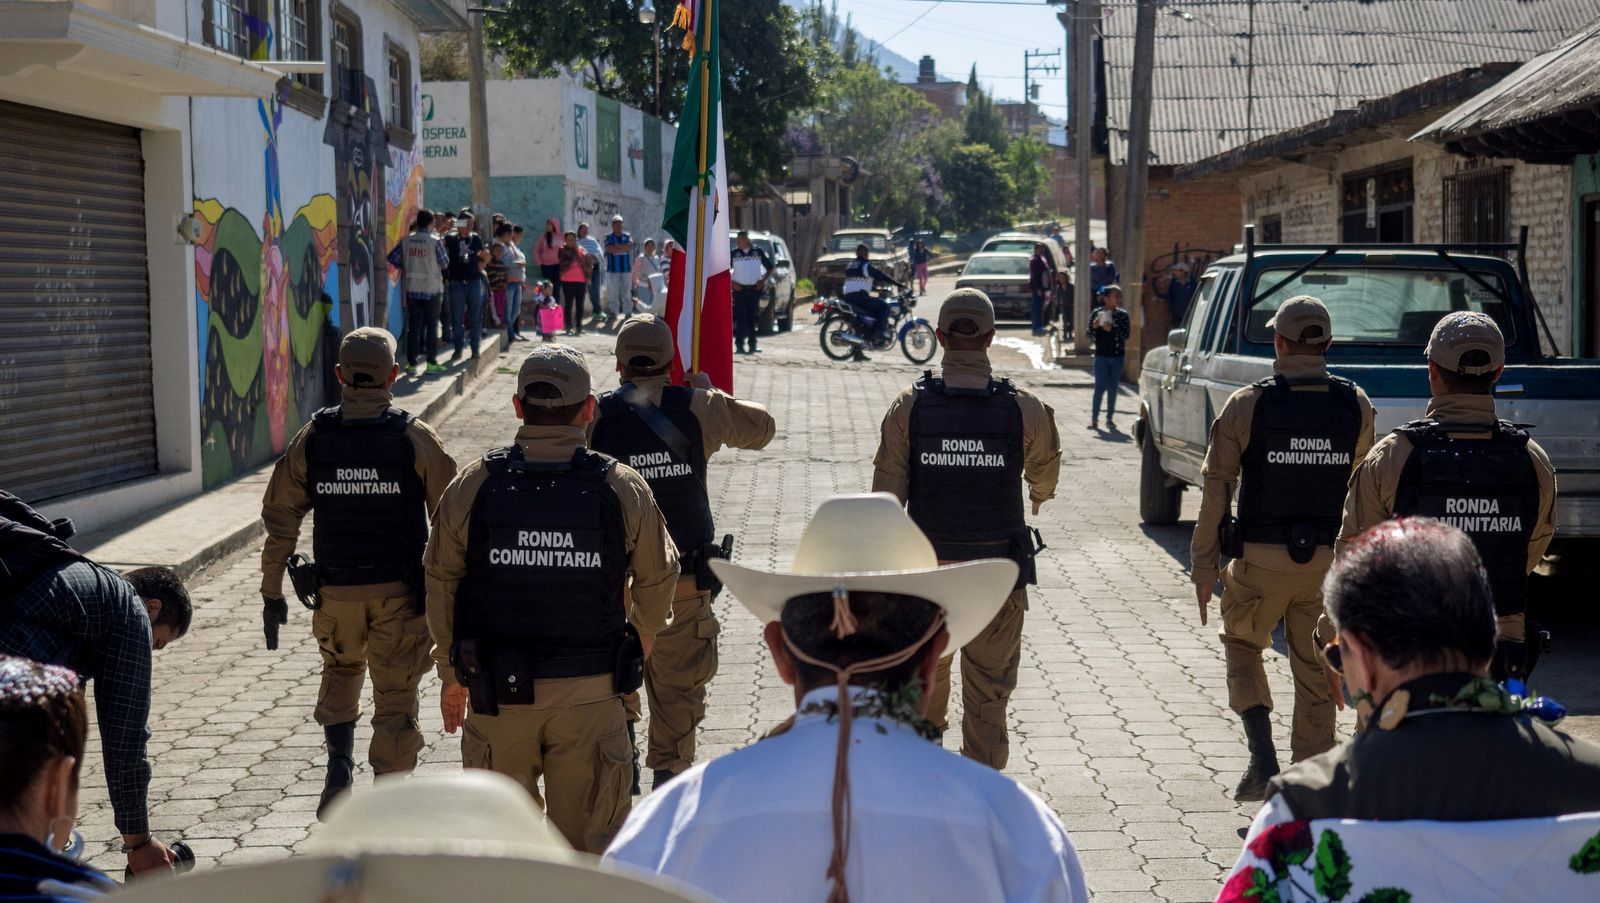 Cheran's local police group, known as the Ronda Comunitaria, which replaced the municipal police, lead a march through the town's four neighborhoods, April 15, 2018. (Photo: José Luis Granados Ceja)